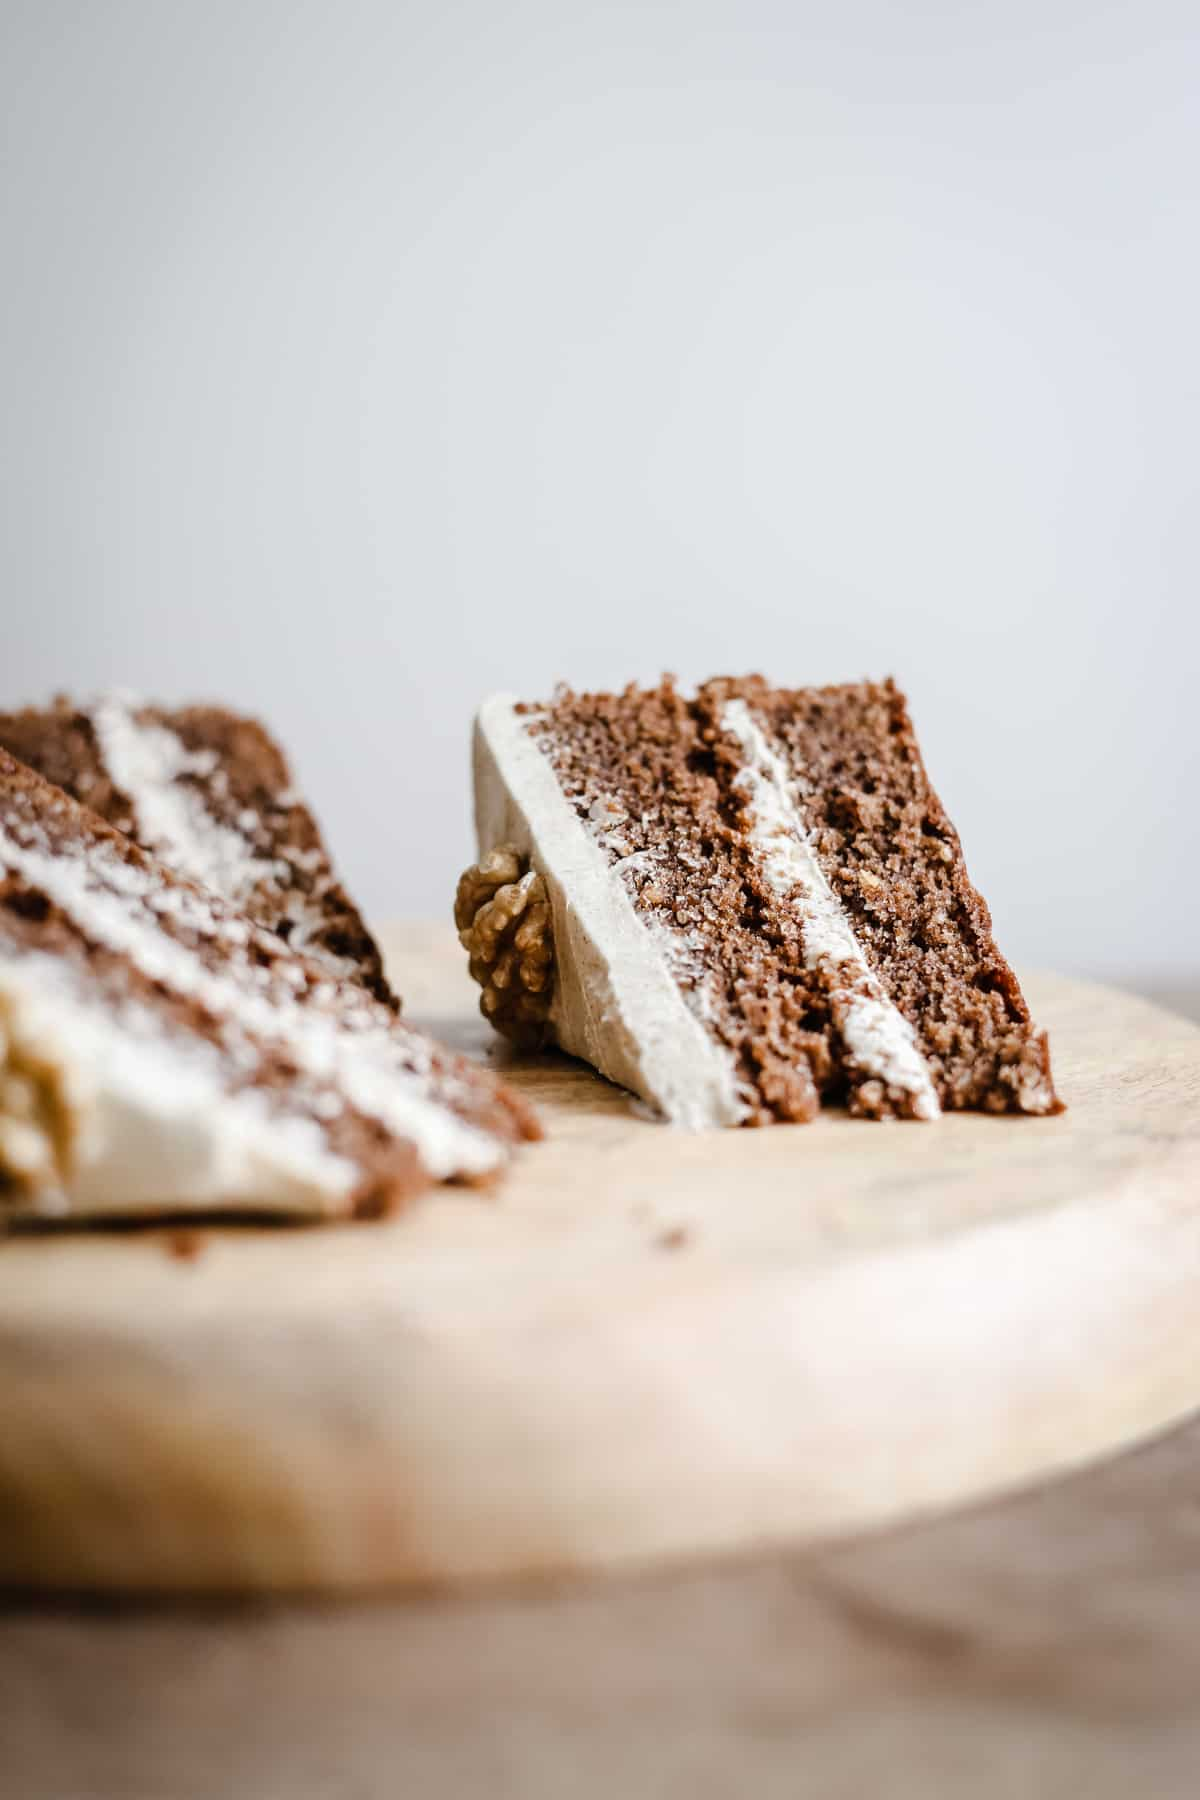 Slices of gluten-free Coffee and Walnut Cake on a wooden board